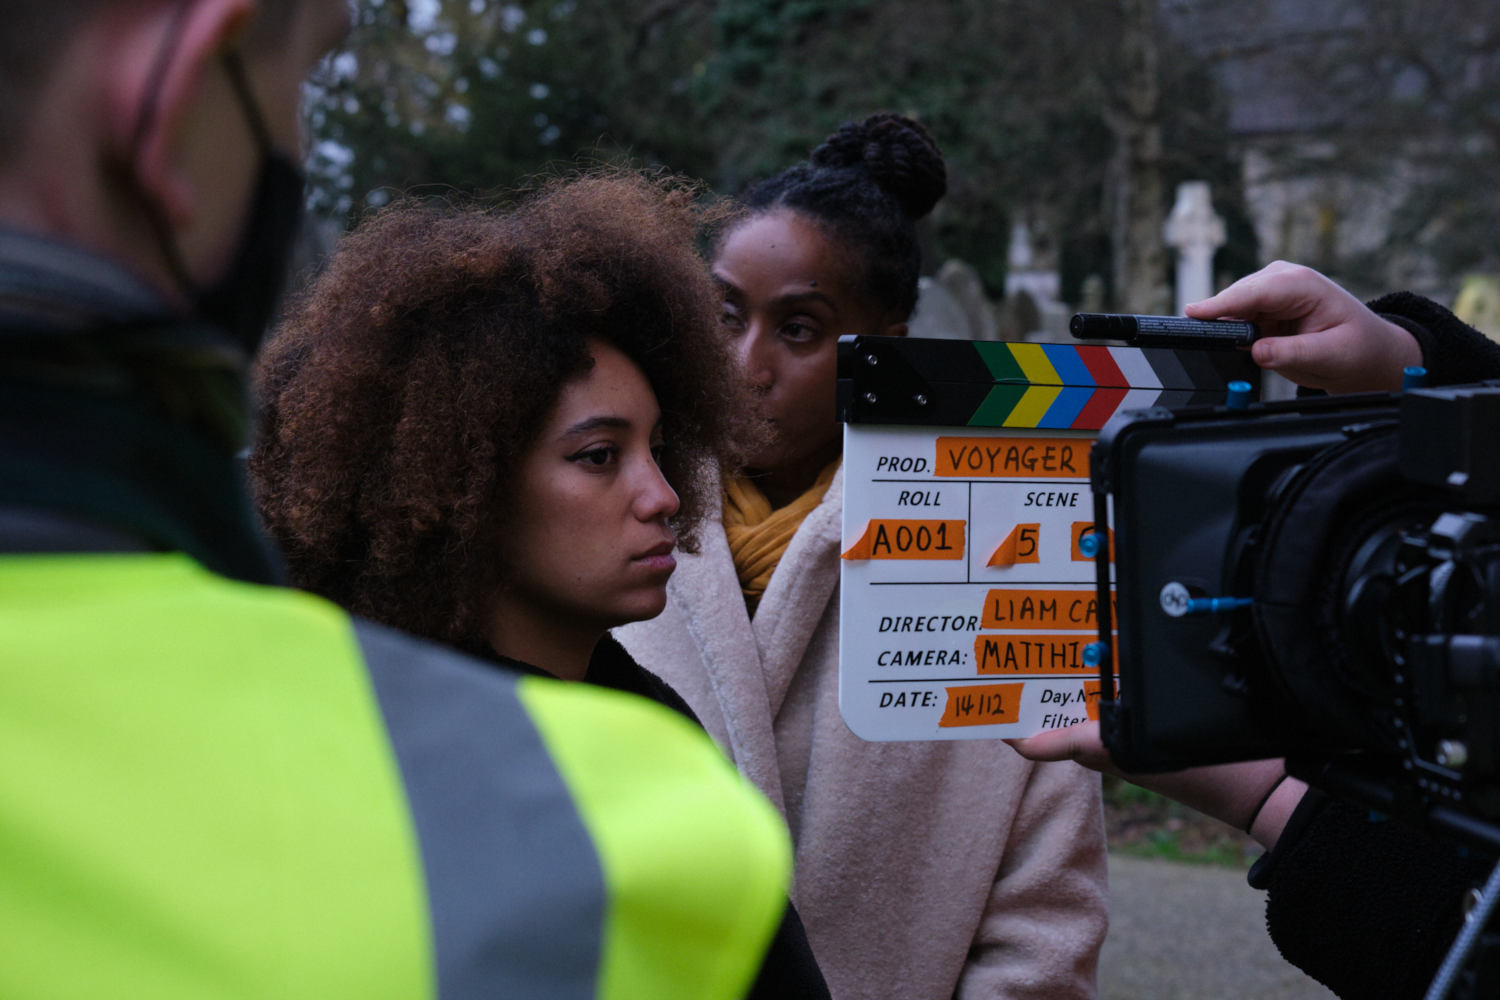 Behind the scenes image from Liam Calvert's Voyager short film showing Sophie Delora Jones and Fredericka Charles taken by Matt Towers